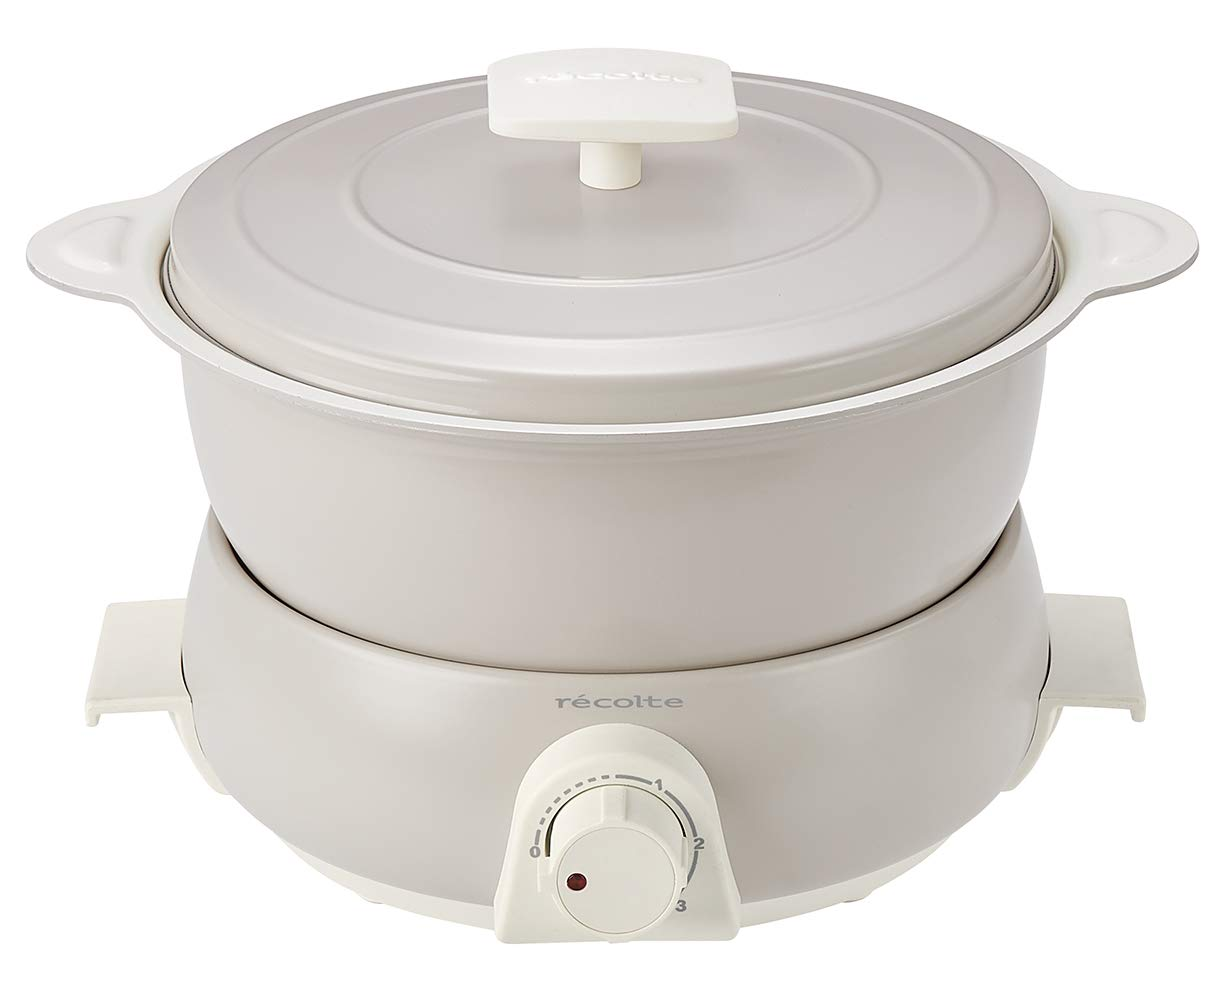 récolte Electric pot Multi Cooker''Pot Duo fete'' (Oyster White) RPD-3W【Japan Domestic Genuine Products】 【Ships from Japan】